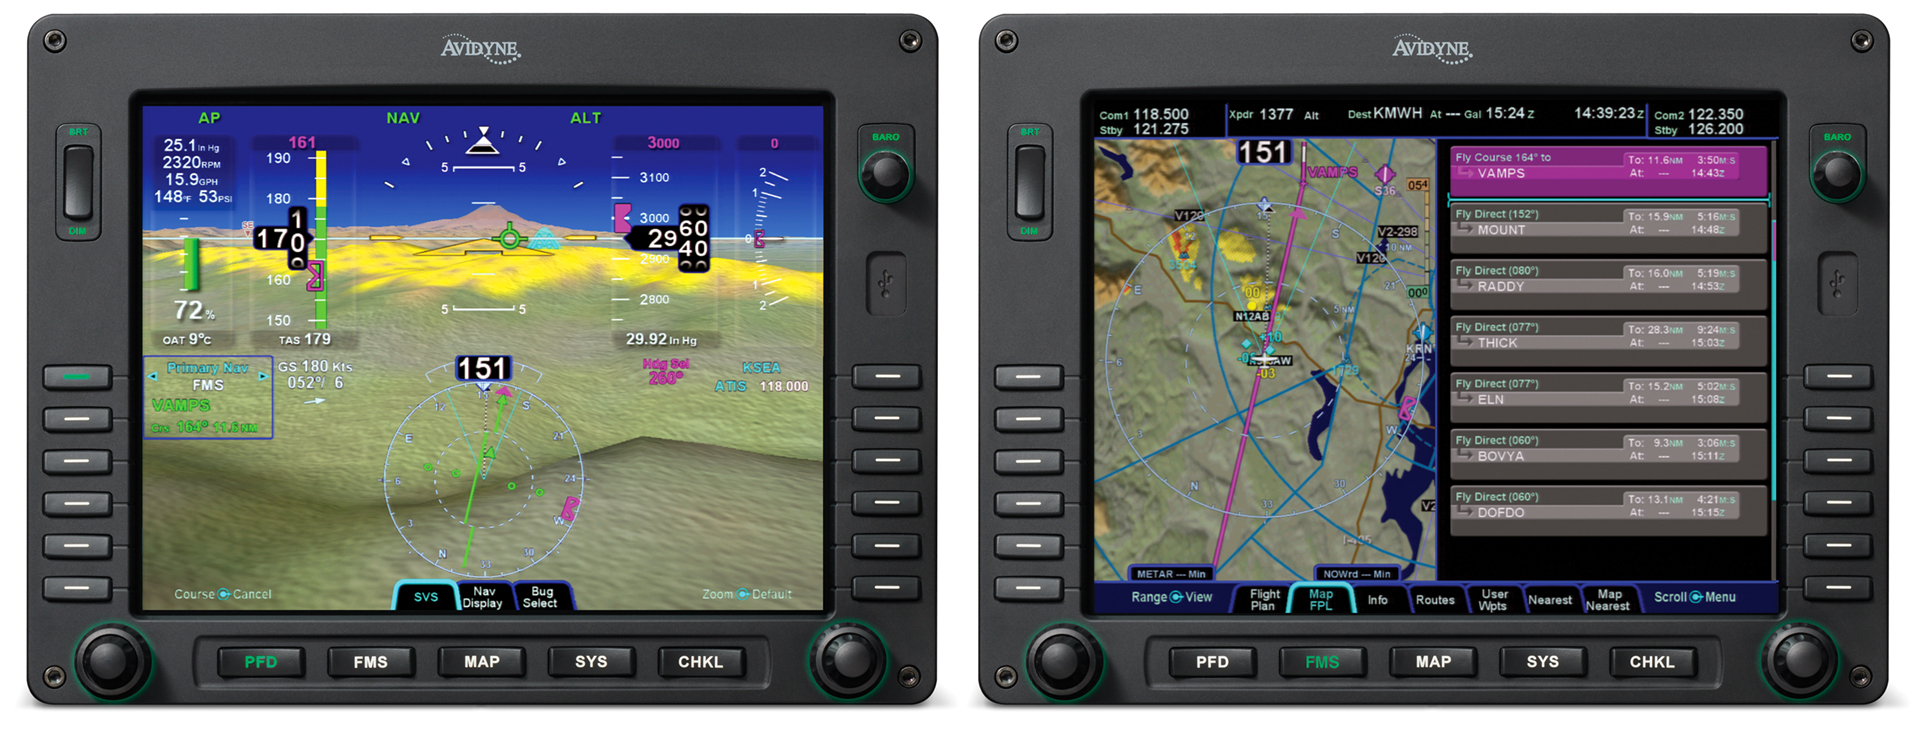 Avidyne's Synthetic Vision running on Entegra Release 9